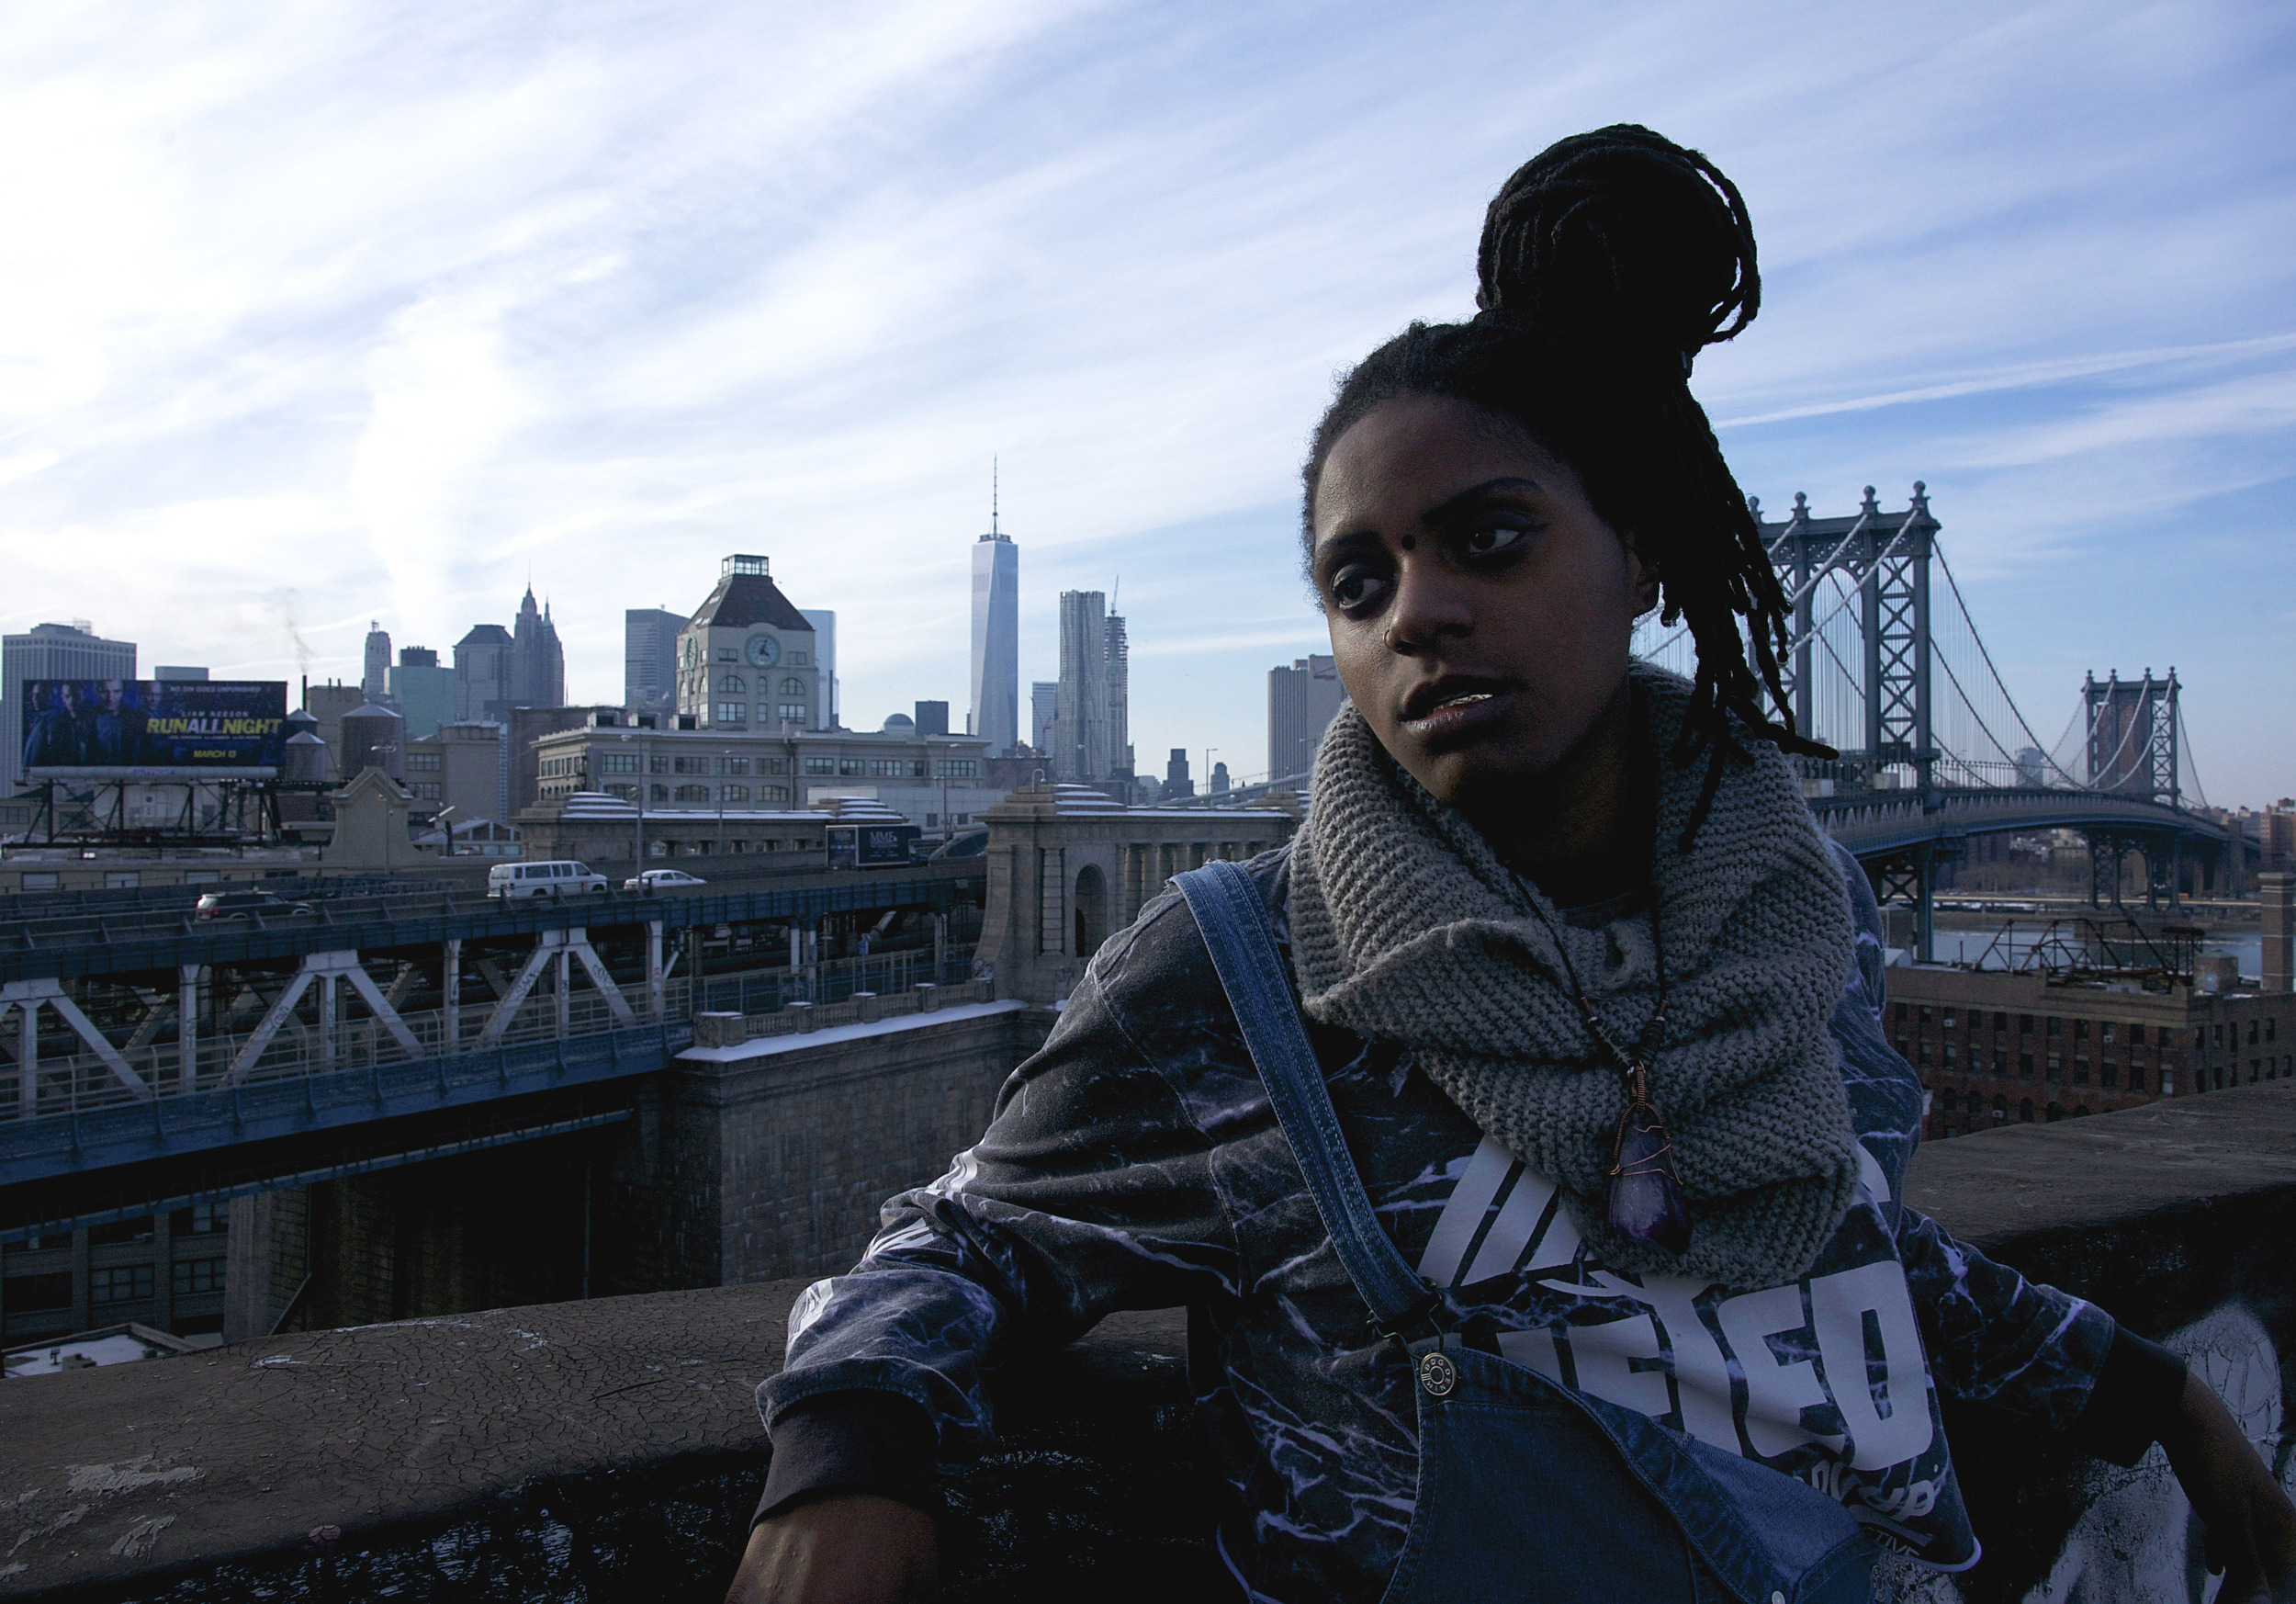 """Chelsea    Reject  is a 22-year old MC from Brooklyn, NY by way of St. Lucia. She's recently released her new album #CMPLX which features new songs with Kirk Knight, CJ Fly, Nyck Caution and more. In the past year she has performed on several tours including the Smoker's Club tour with Method Man & Redman, as well as with Mick Jenkins and Kirk Knight of Pro Era. Her new video for """"Closer"""" is out now."""